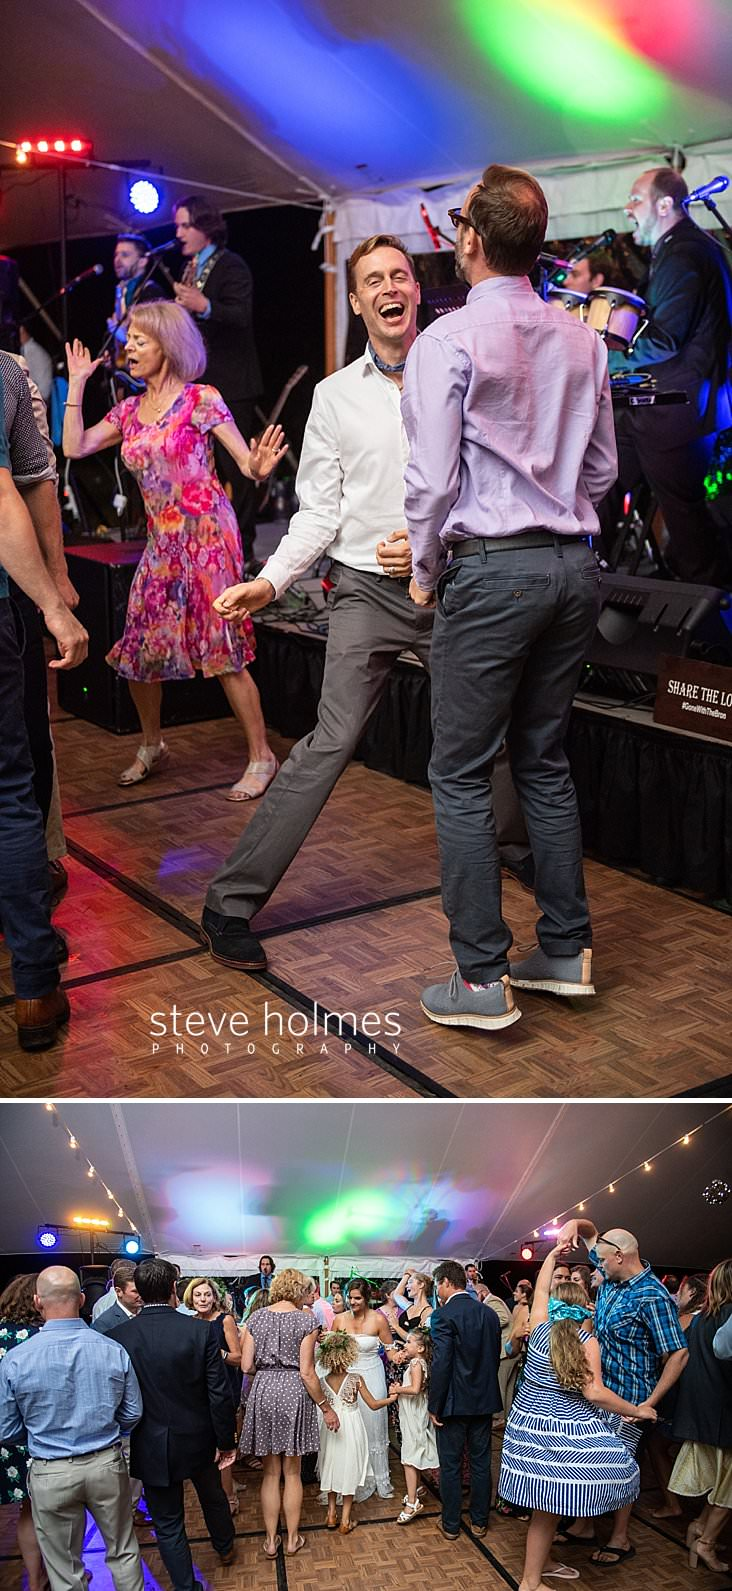 89_Guests dance to live band at wedding reception under tent.jpg